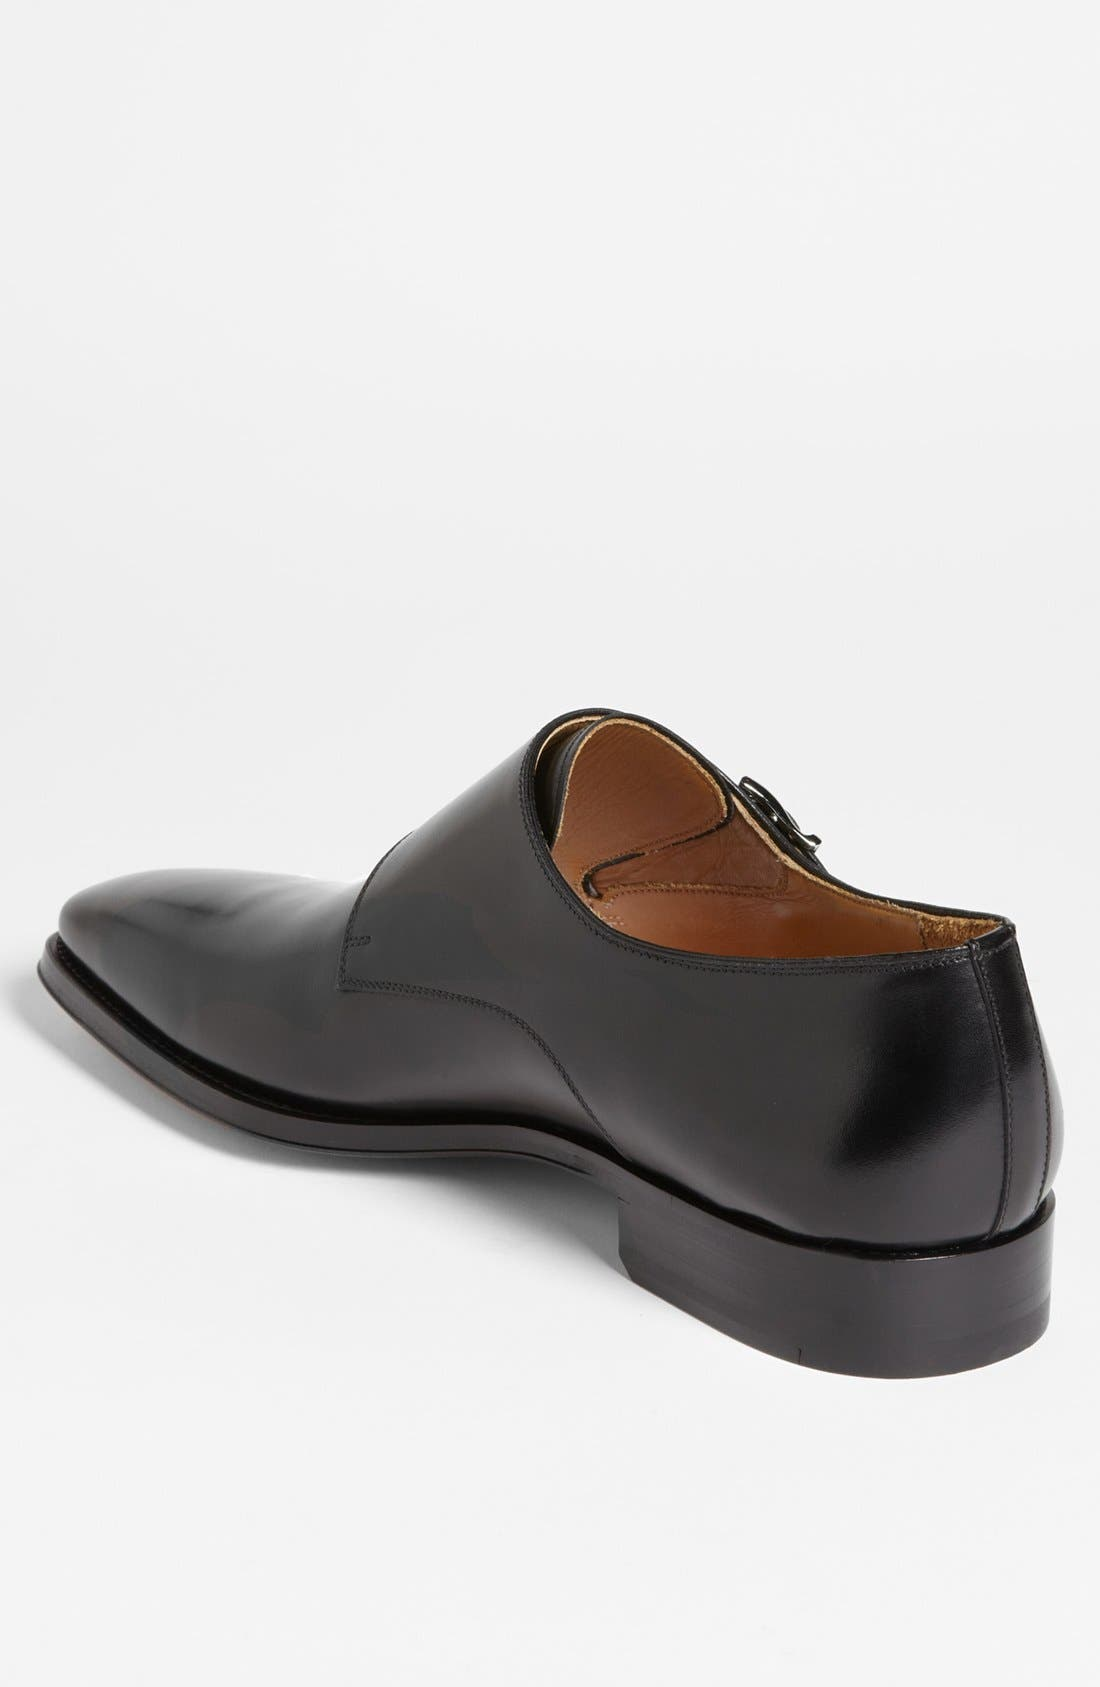 Alternate Image 3  - Magnanni 'Miro' Double Monk Strap Shoe (Men)